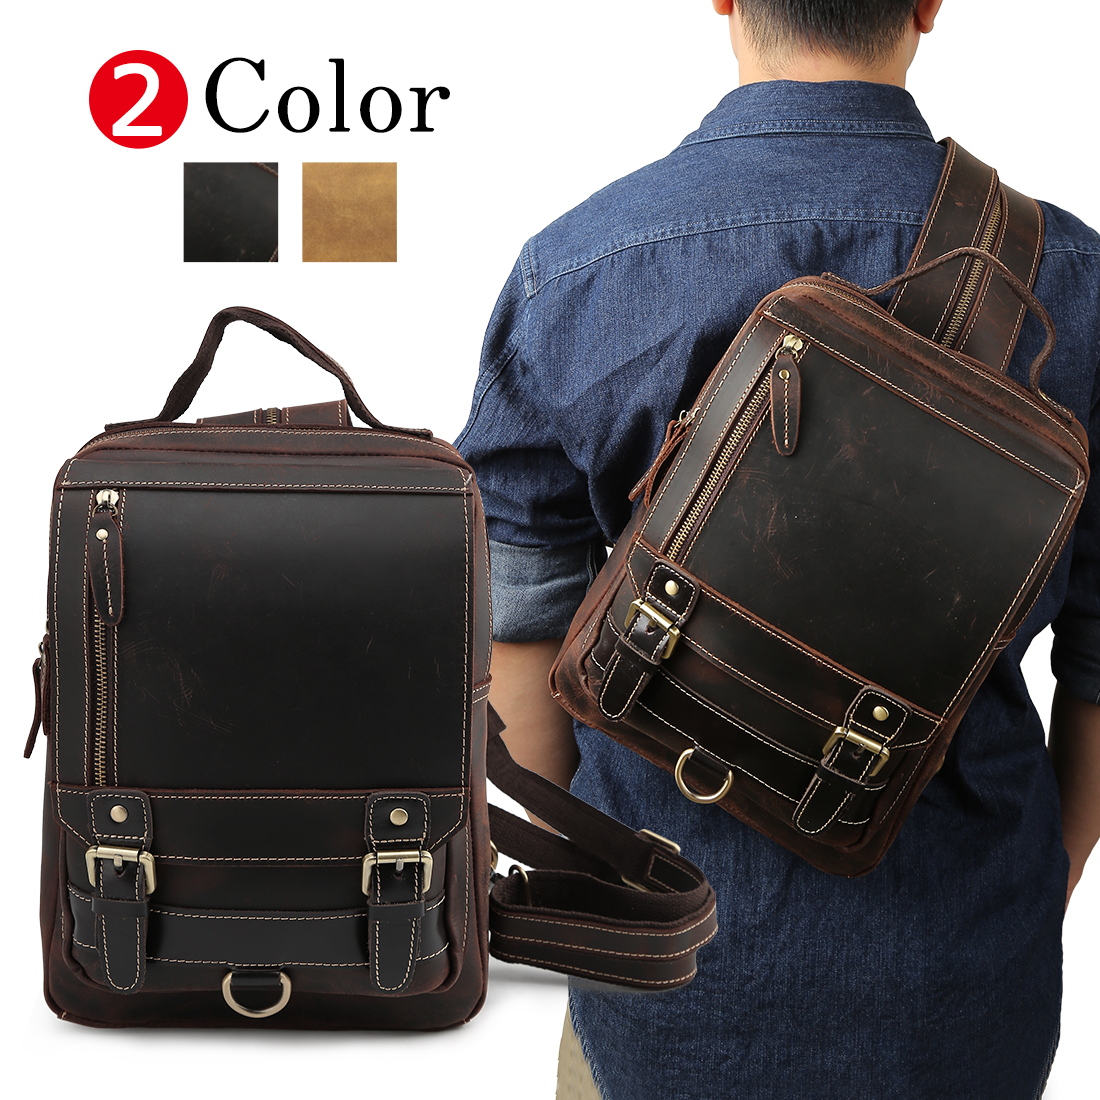 TIDING 3WAY genuine leather body bag men rucksack A4-adaptive thick cowhide  oil leather vintage one shoulder bag day pack backpack bicycle outdoor bag  dark ... 5db41a7c415c6